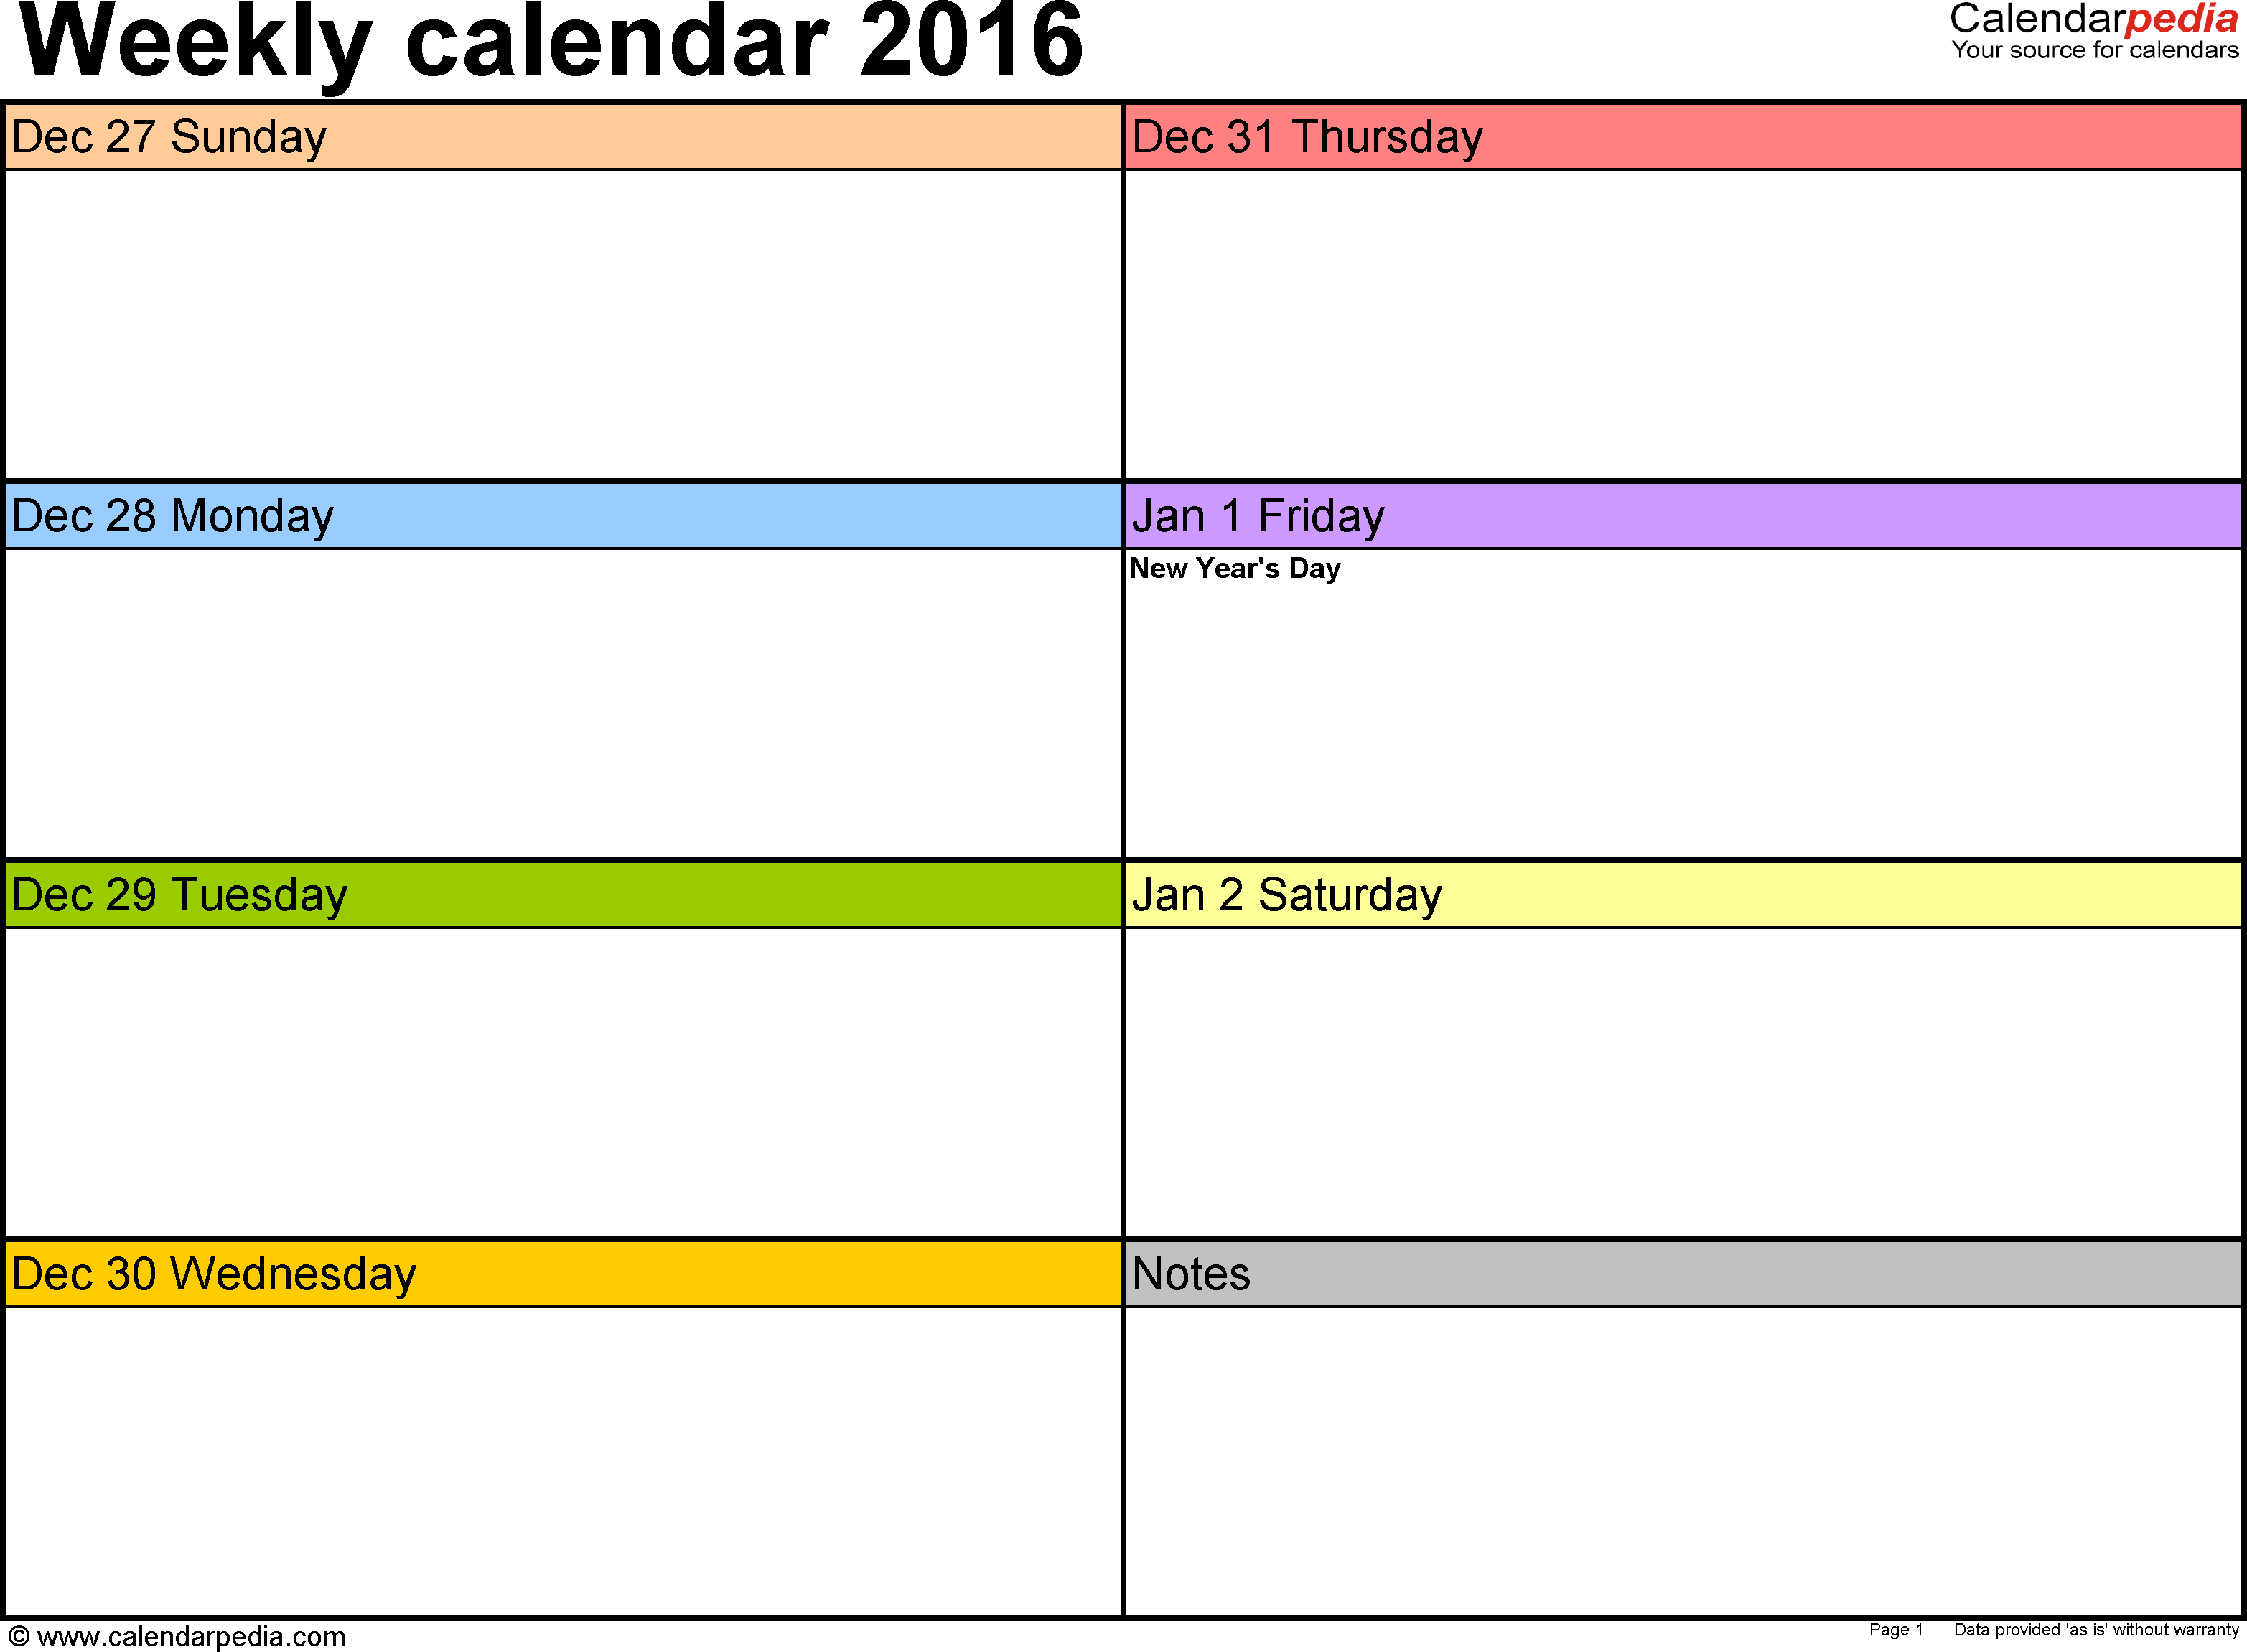 Weekly calendar 2016 for PDF 12 free printable templates – Printable Monthly Calendars